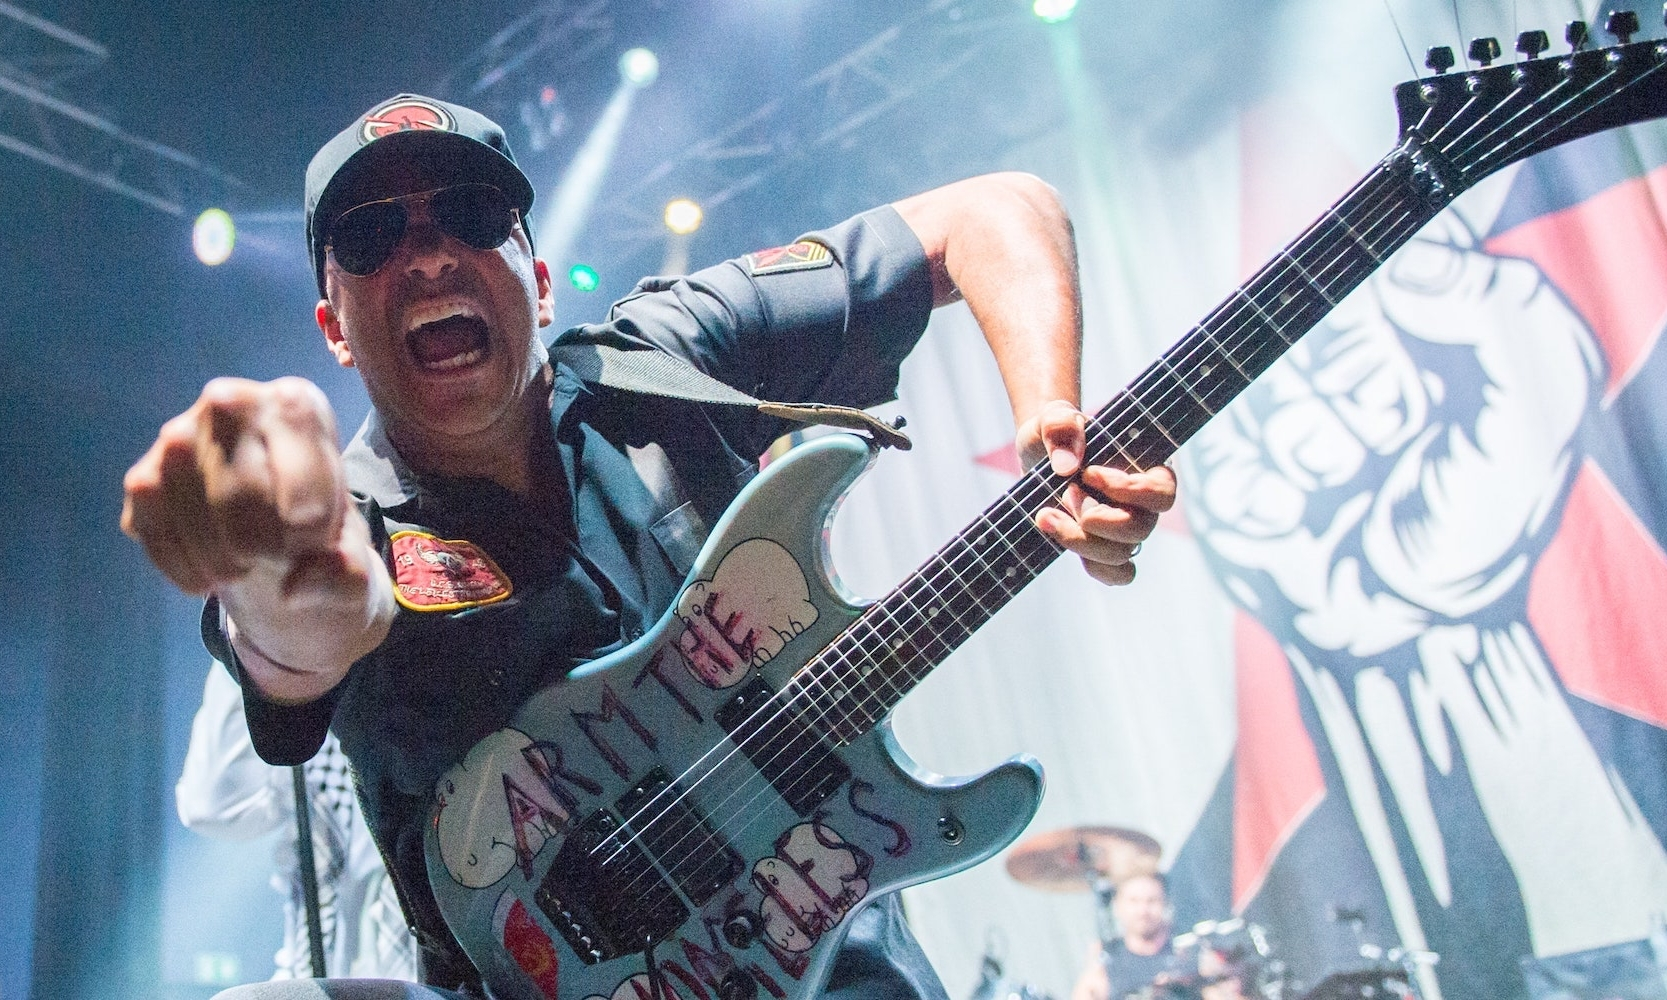 前 Rage Against The Machine 吉他手 Tom Morello 将出版自传书